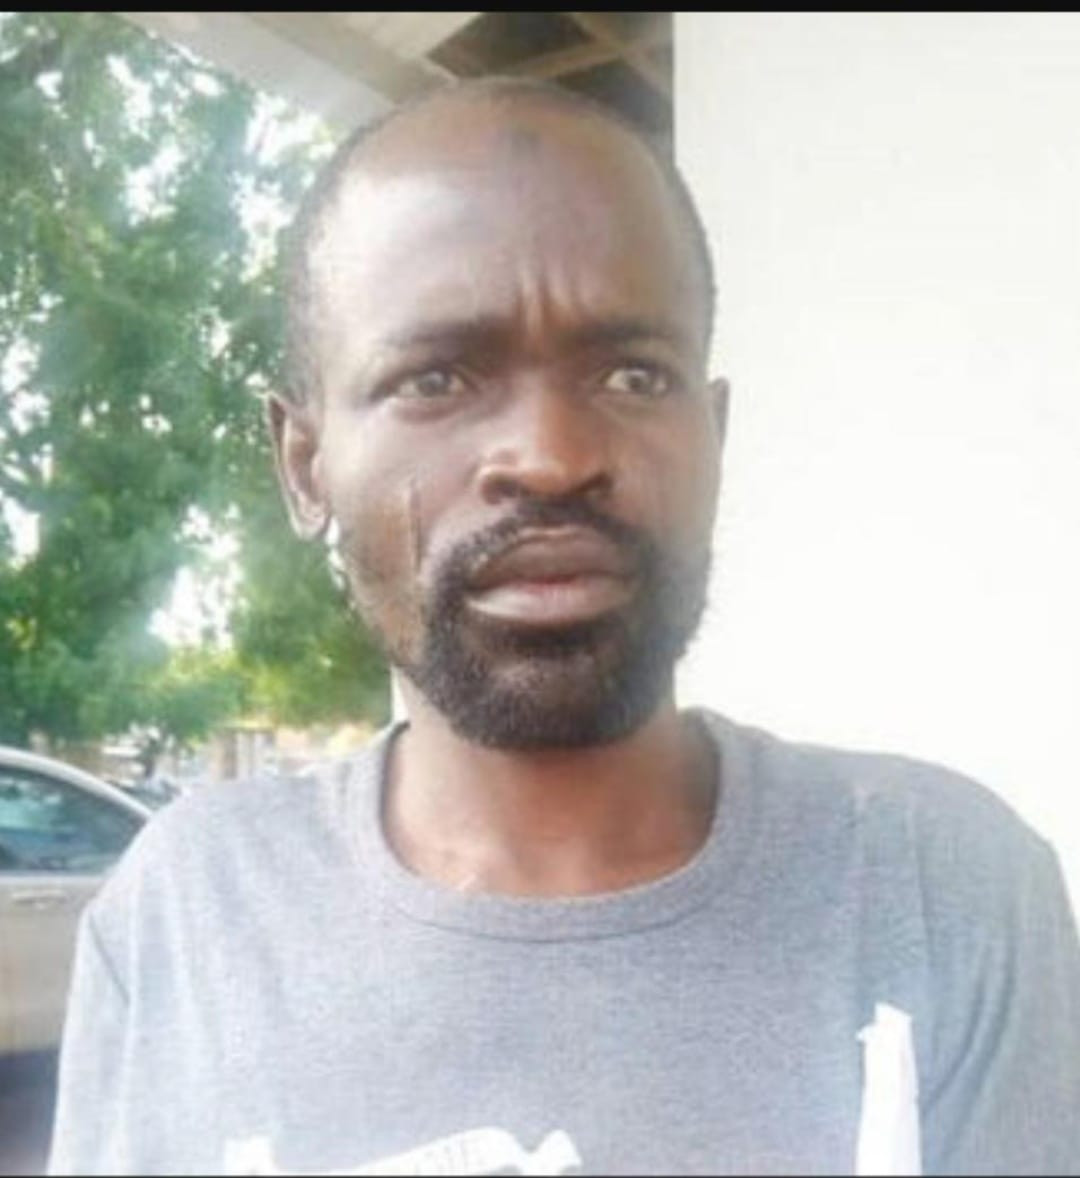 Fake Customs officer sentenced to 20 years imprisonment for employment scam in Kwara